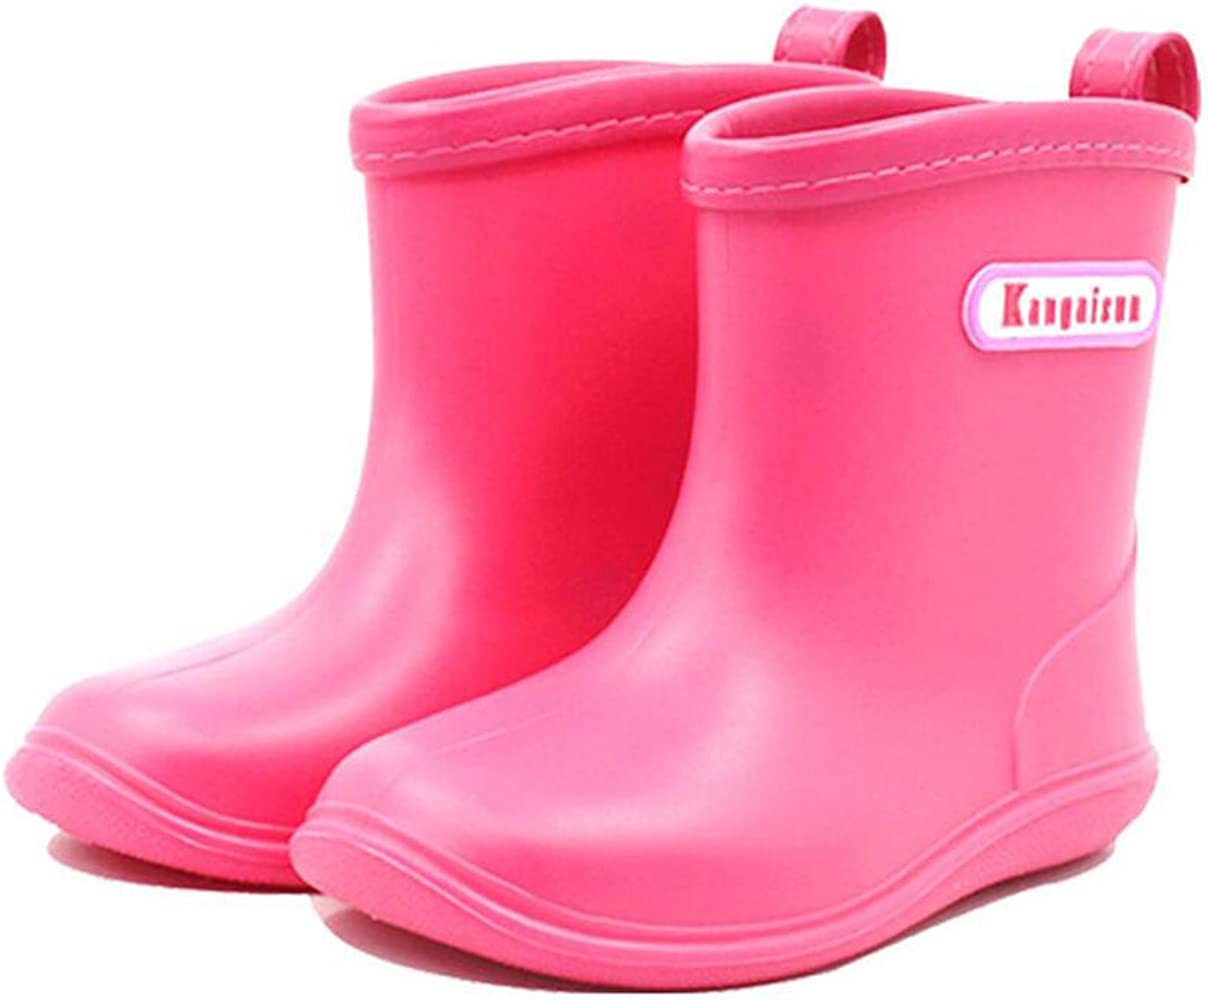 fffae6c629e35 Kids Wellies Baby Rubber Rain Boots Boys Girls Waterproof Wellington Water  Shoes